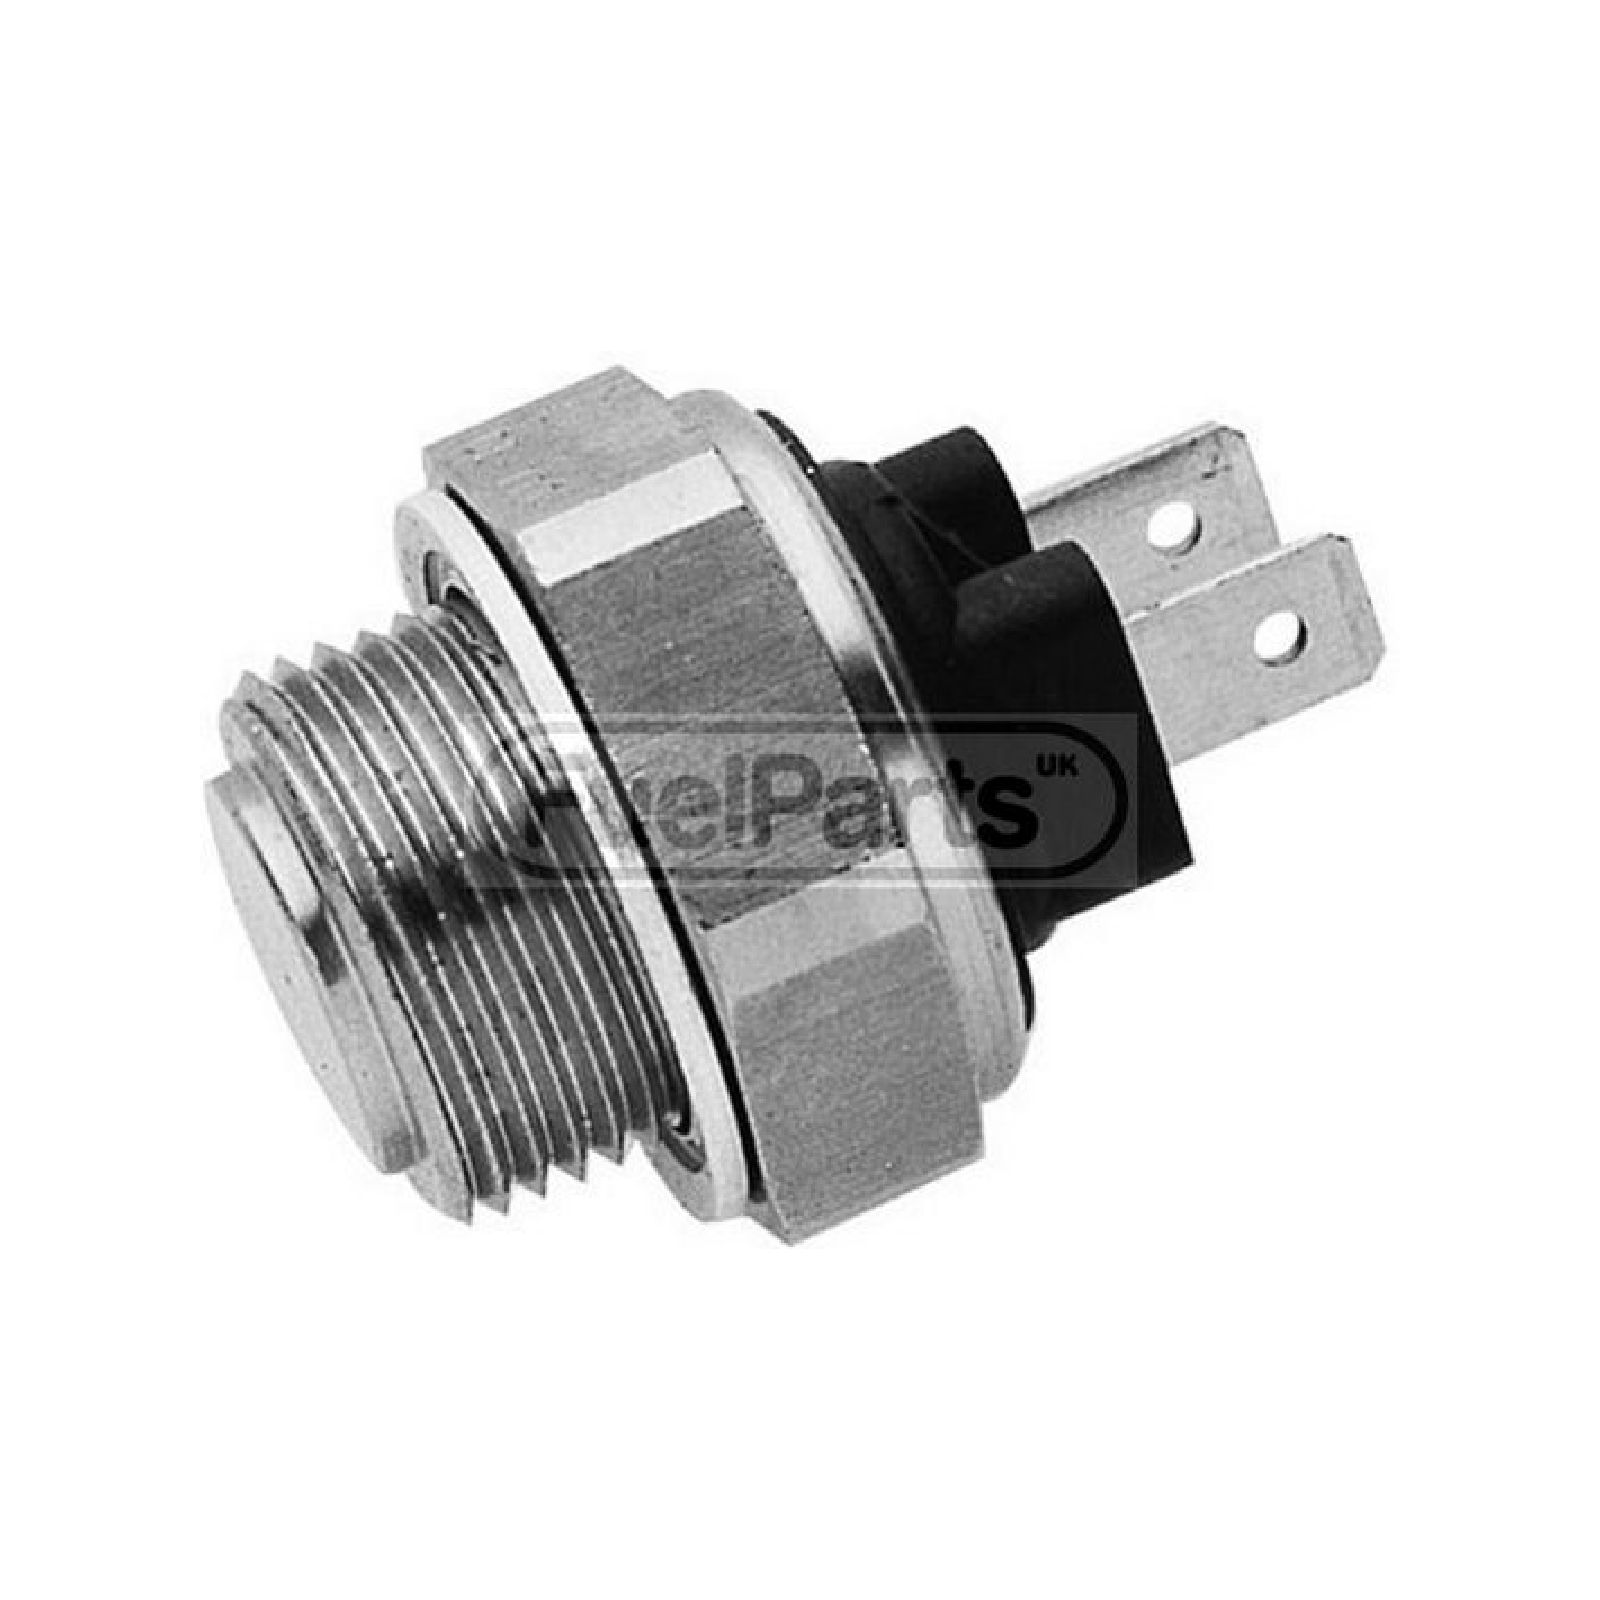 Cooling Fan Temperature Switch : Black housing fuel parts radiator fan temp switch engine